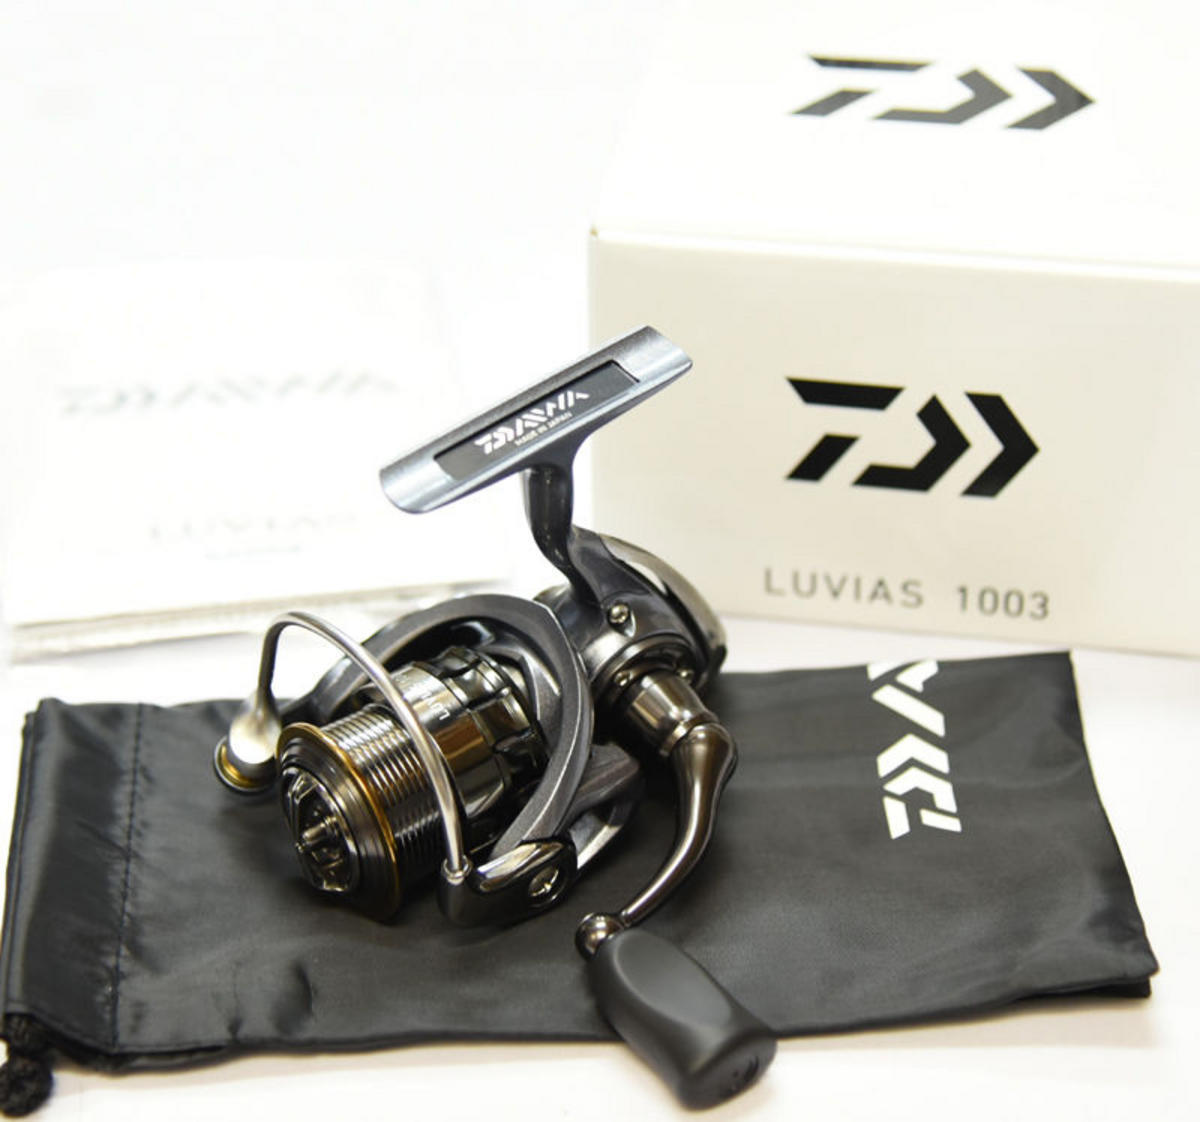 EX DISPLAY DAIWA LUVIAS SPINNING REEL LV1003 CLEARANCE OFFER